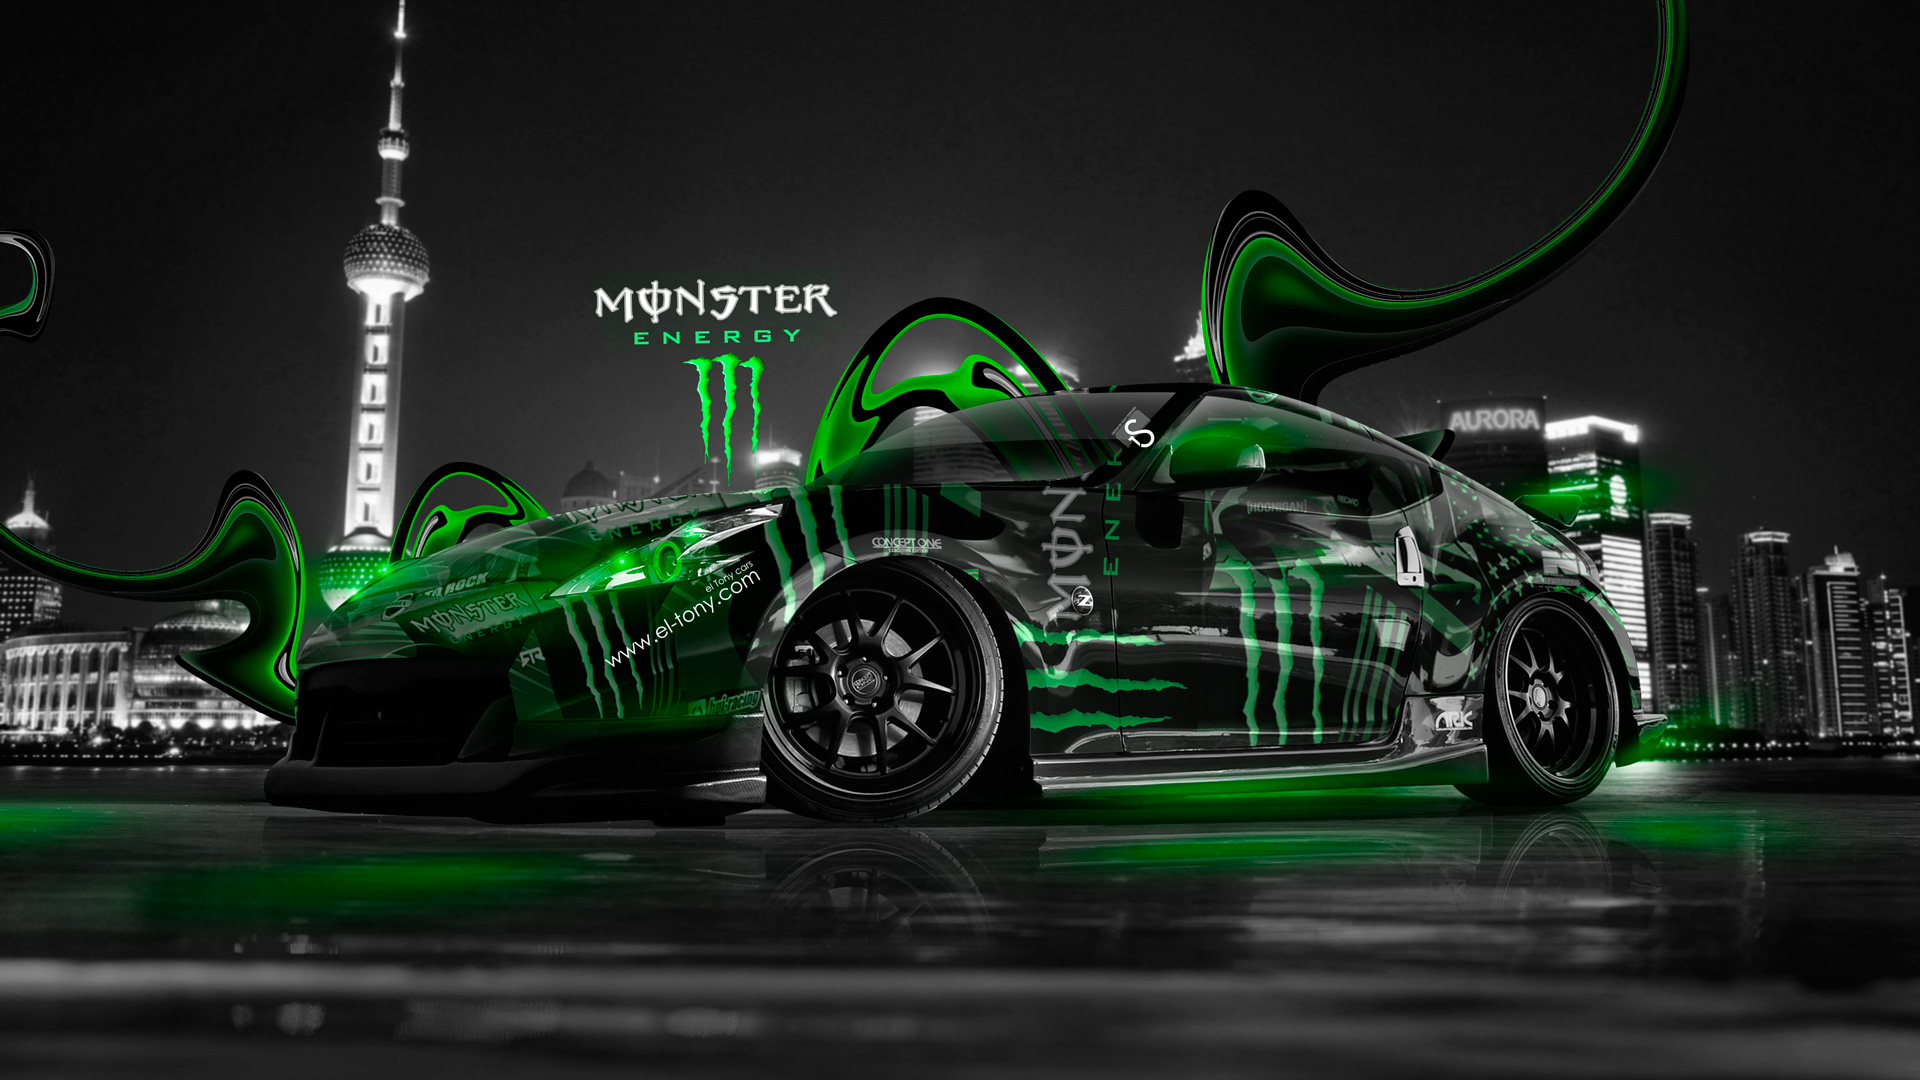 pin monster energy posted by cool wallpapers at 2253 on. Black Bedroom Furniture Sets. Home Design Ideas